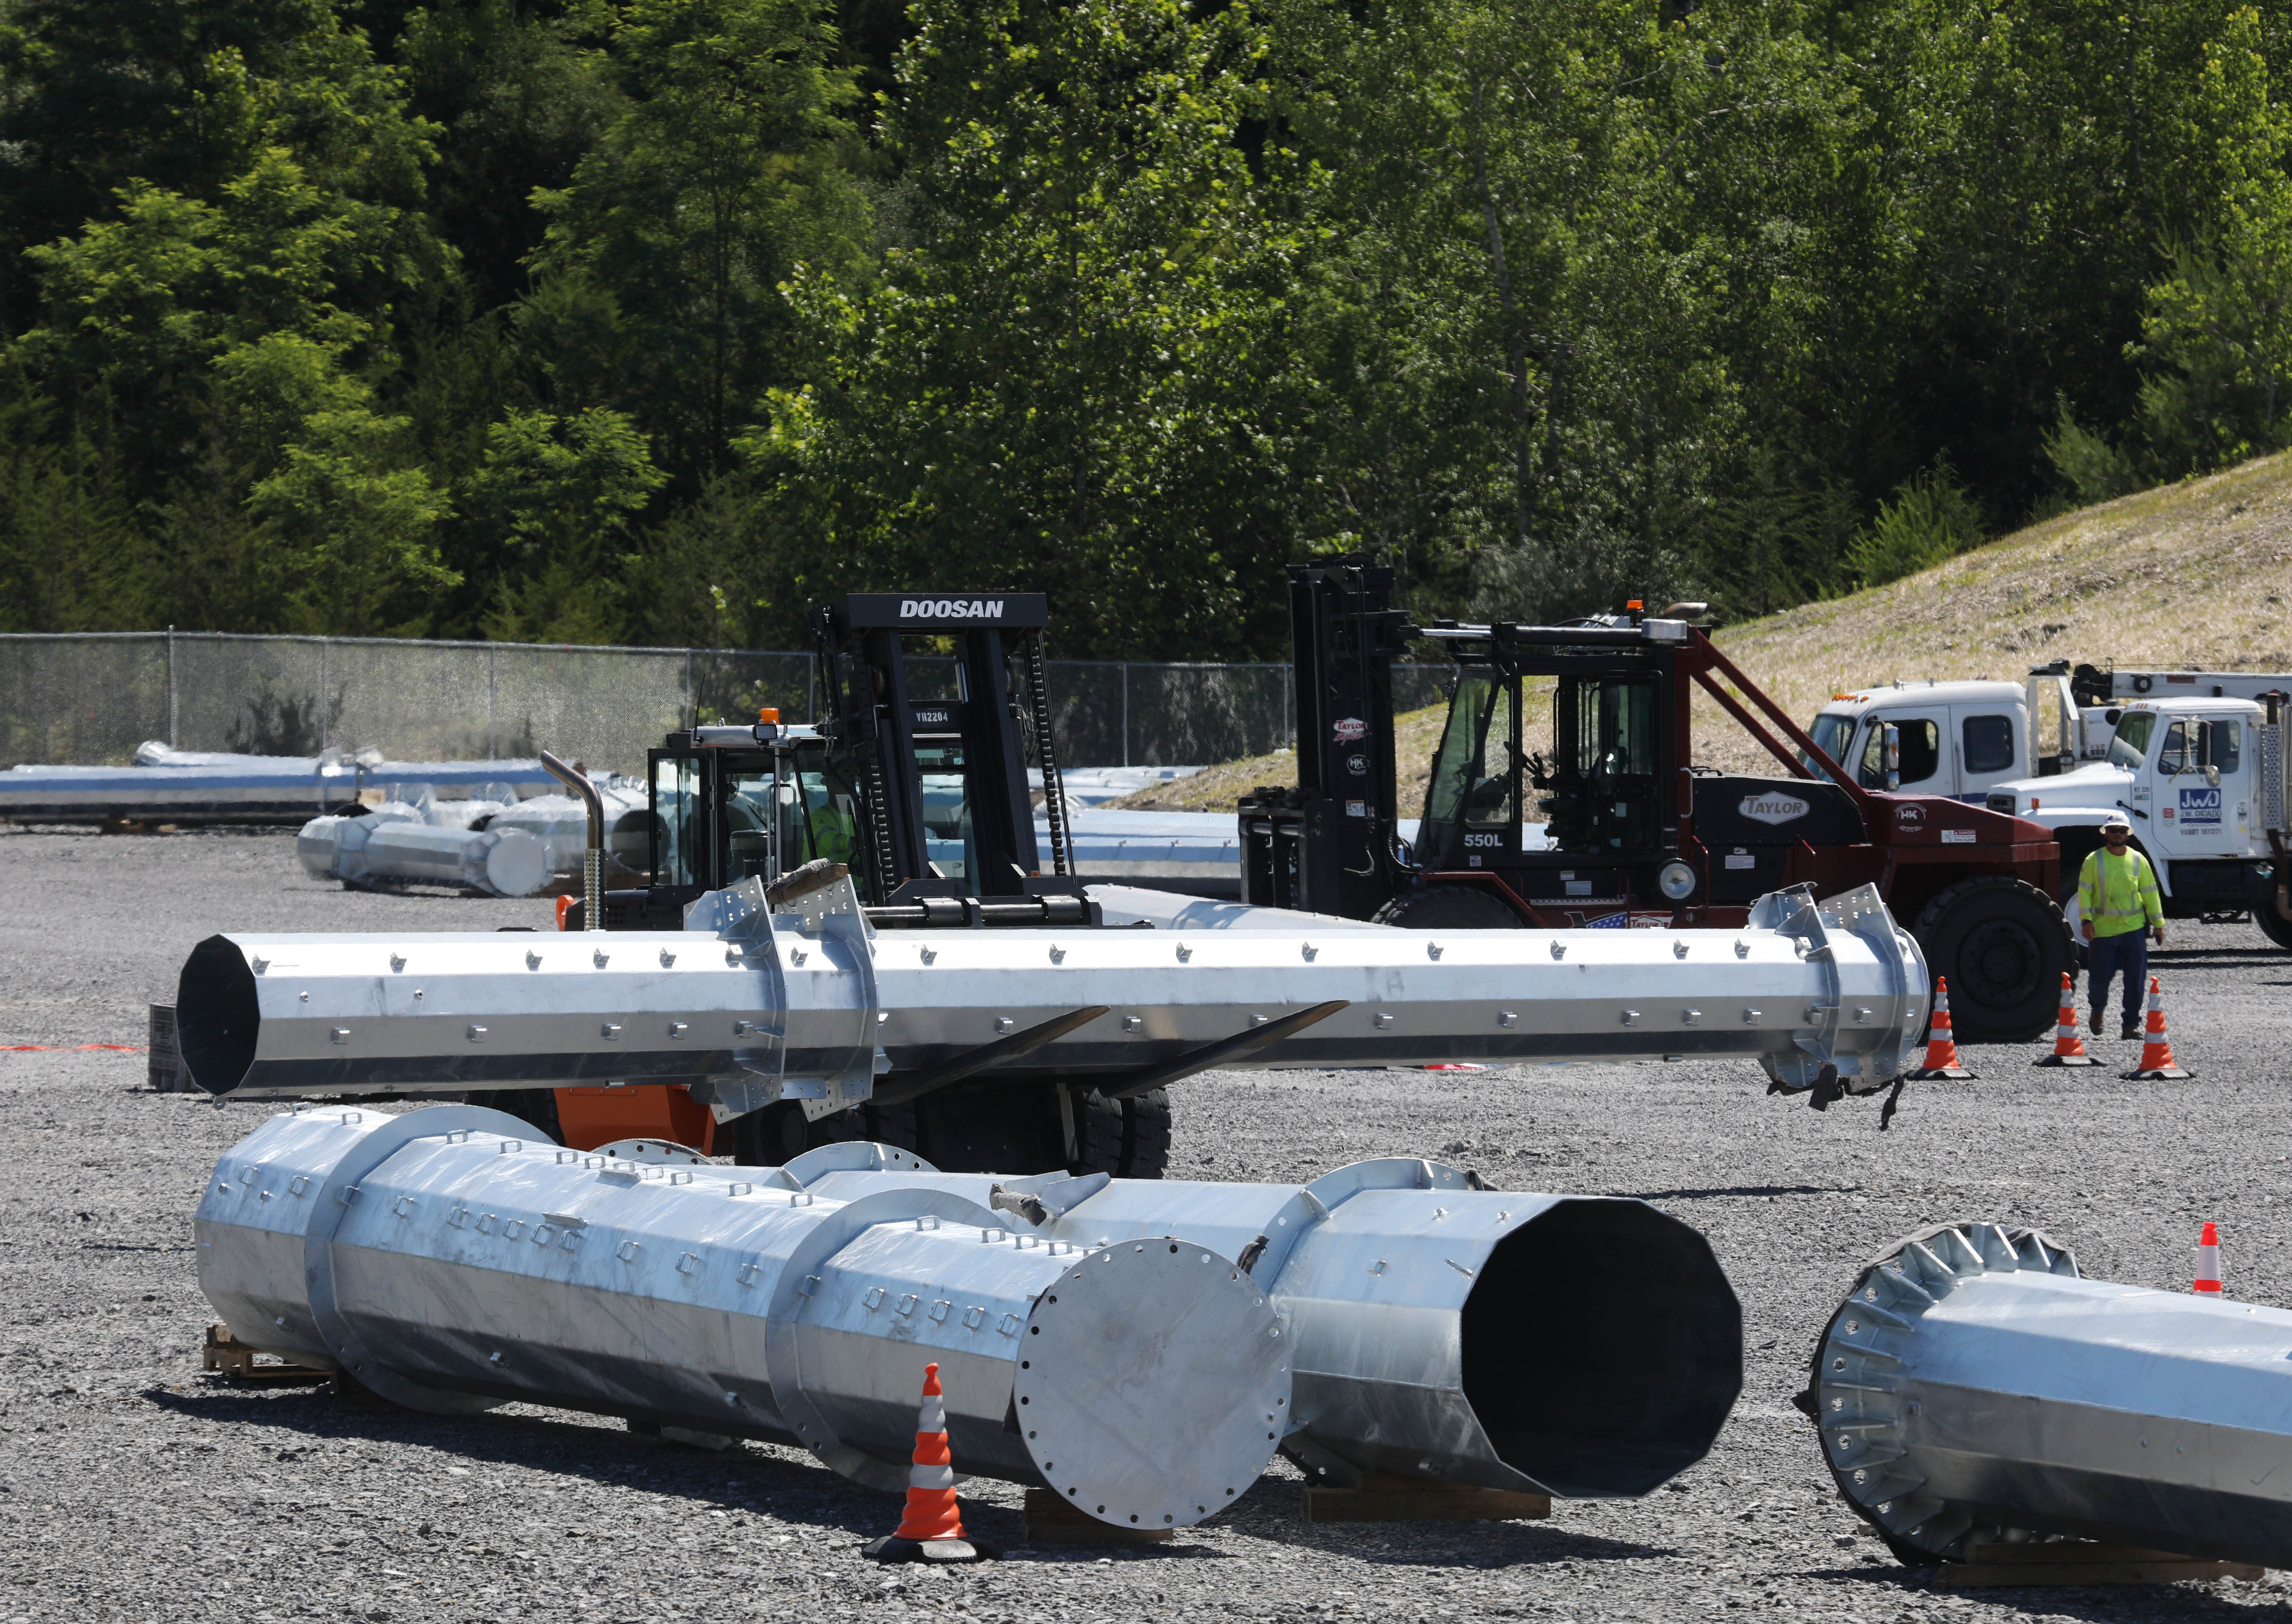 A New York Transco site in Claverack where materials for power transmission line upgrades are stored and distributed before installation on June 24, 2021.